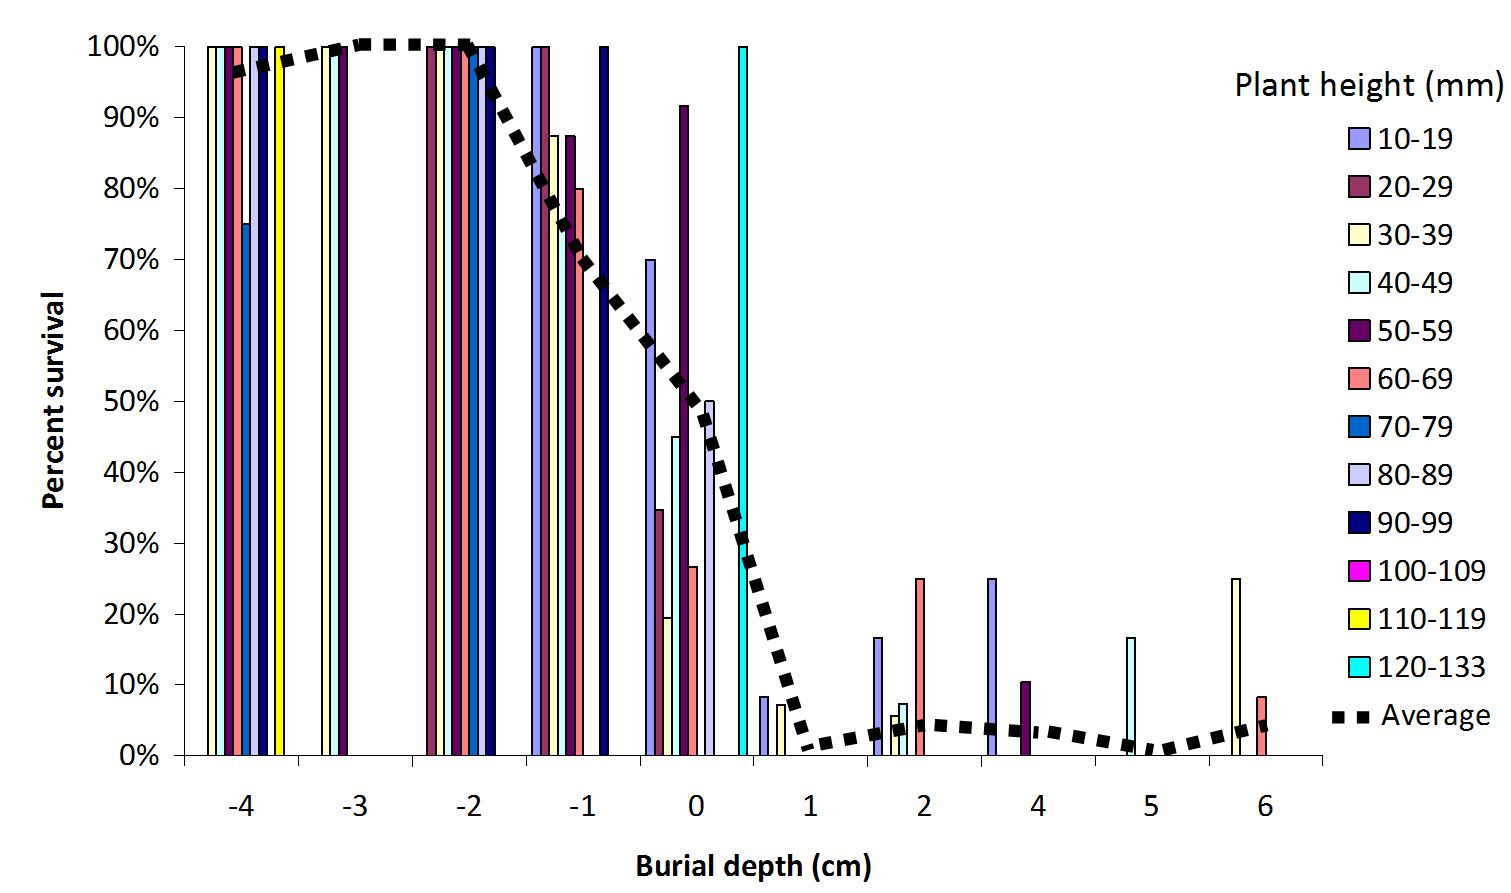 The effect of burial depth on average percentage survival of six plant species over a range of plant heights